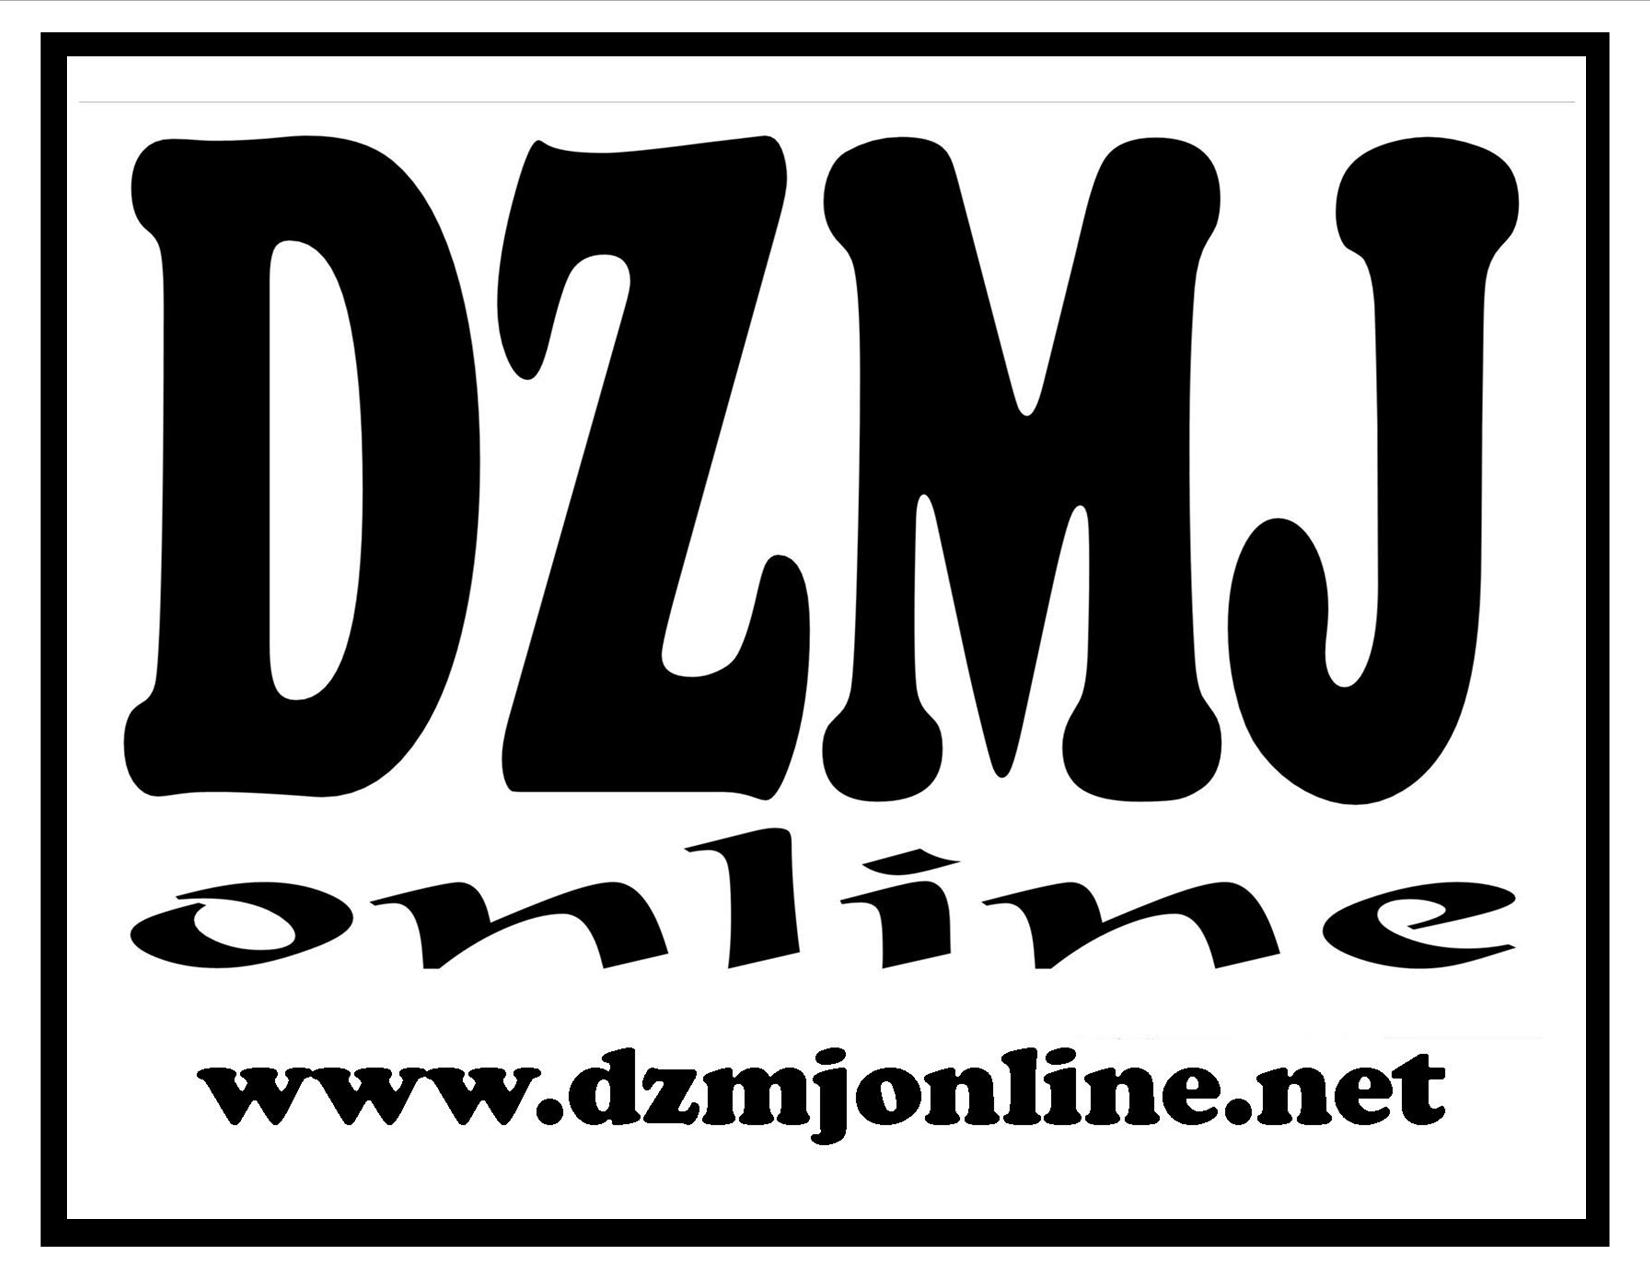 dzmj online official boxed logo 2018